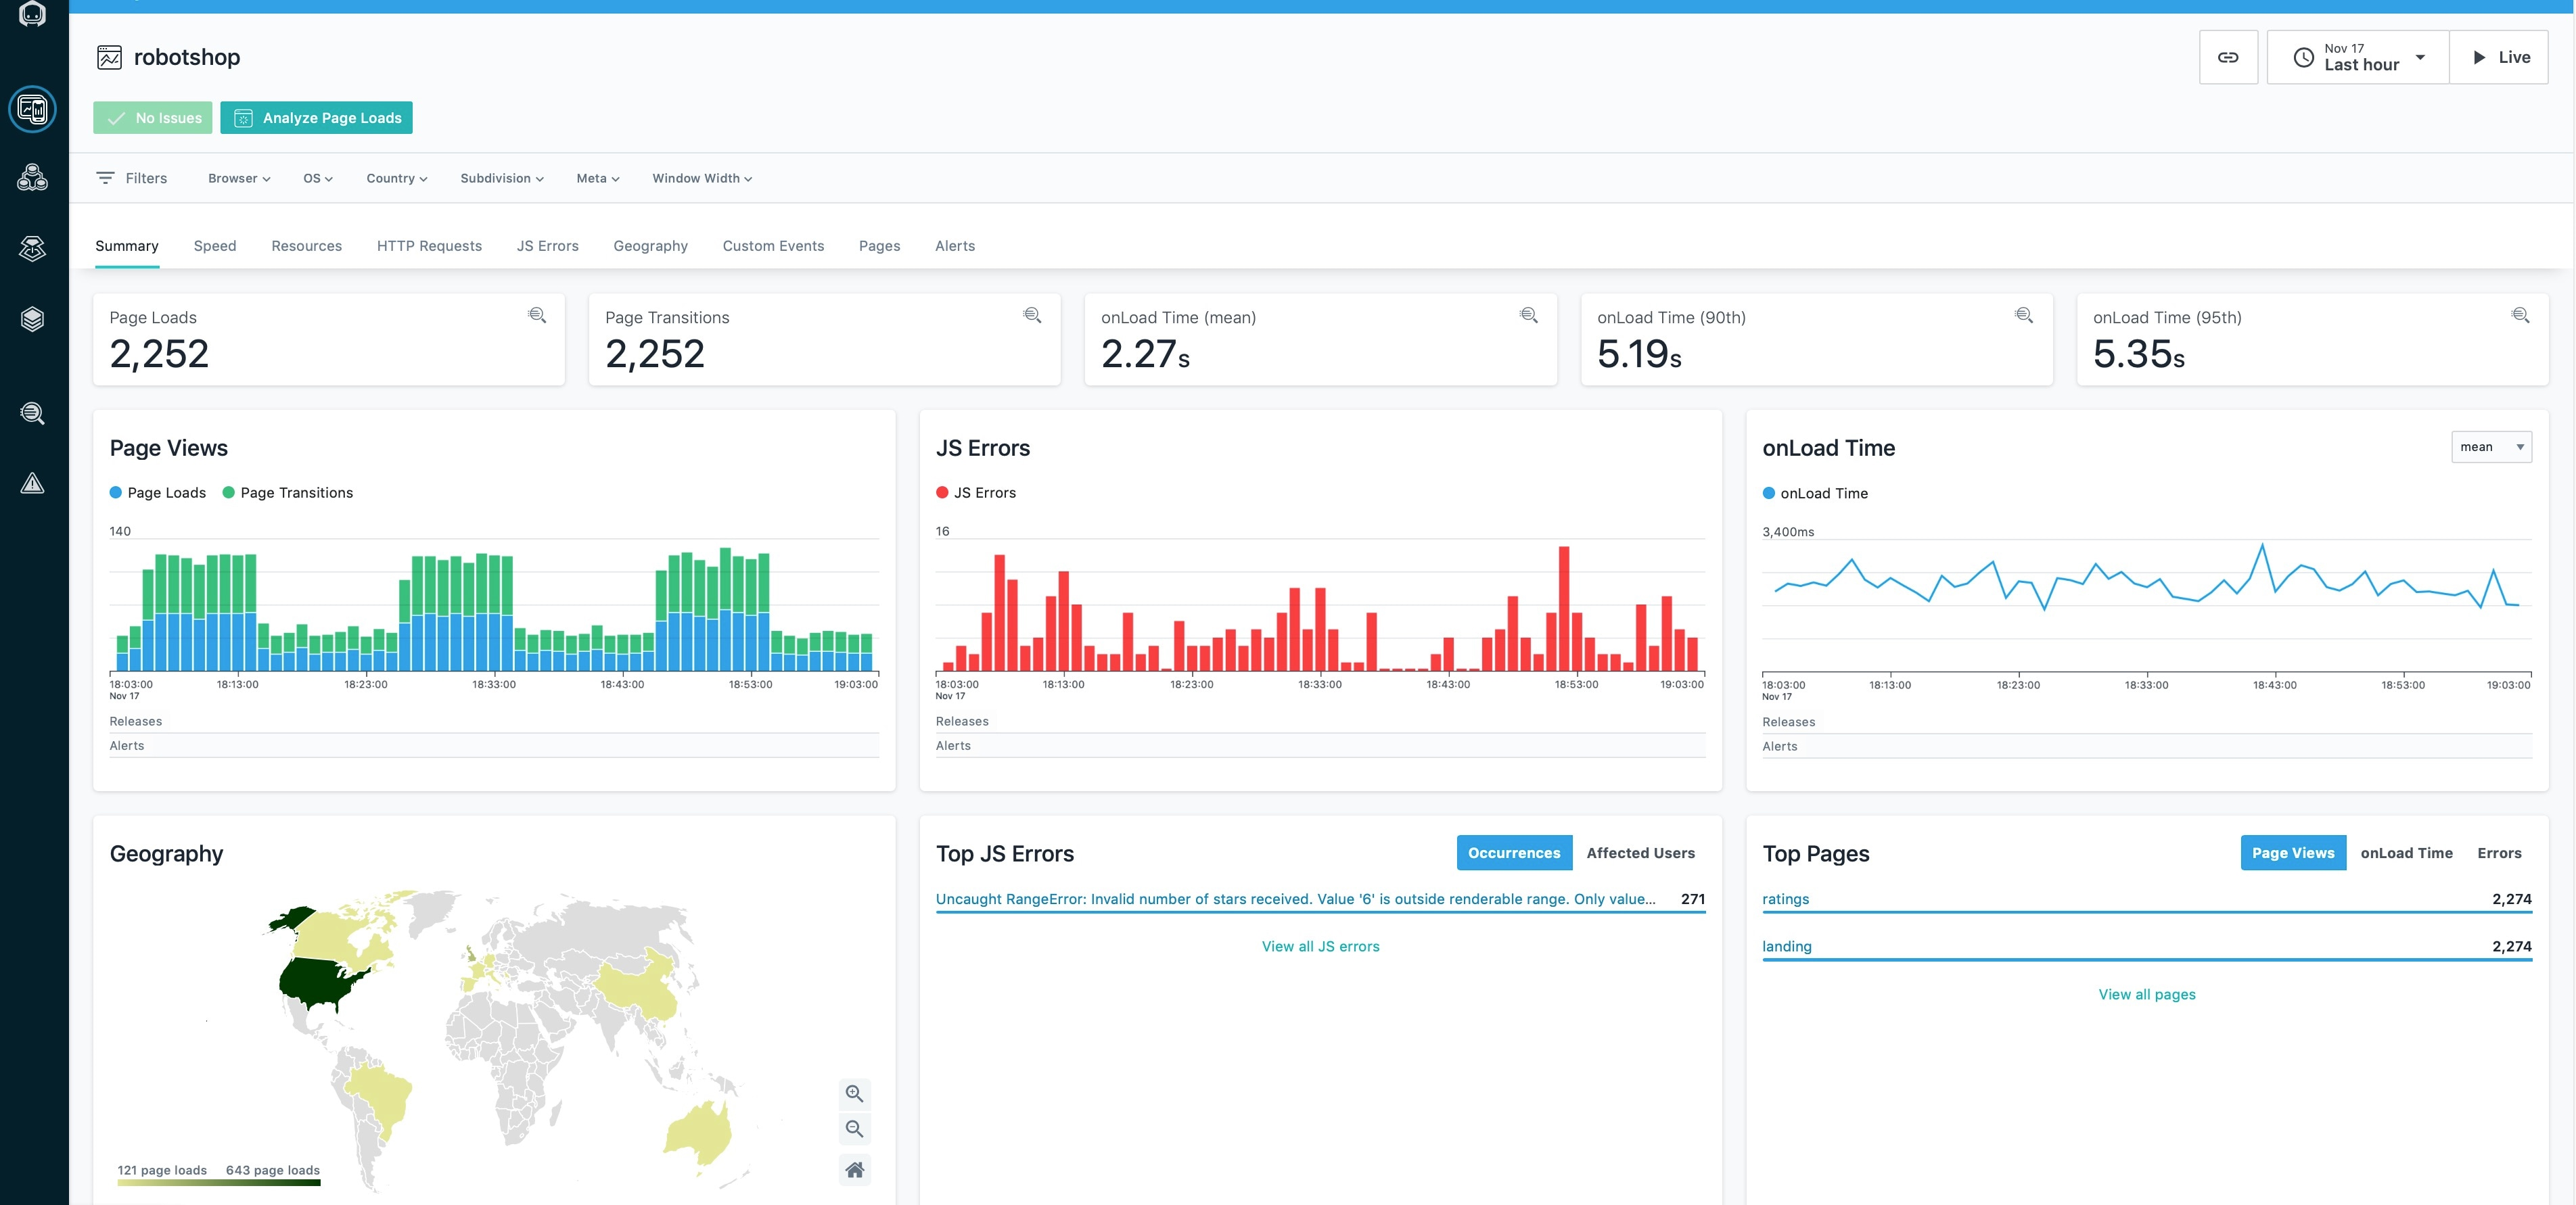 Screenshots from the Instana performance monitoring and observability platform.